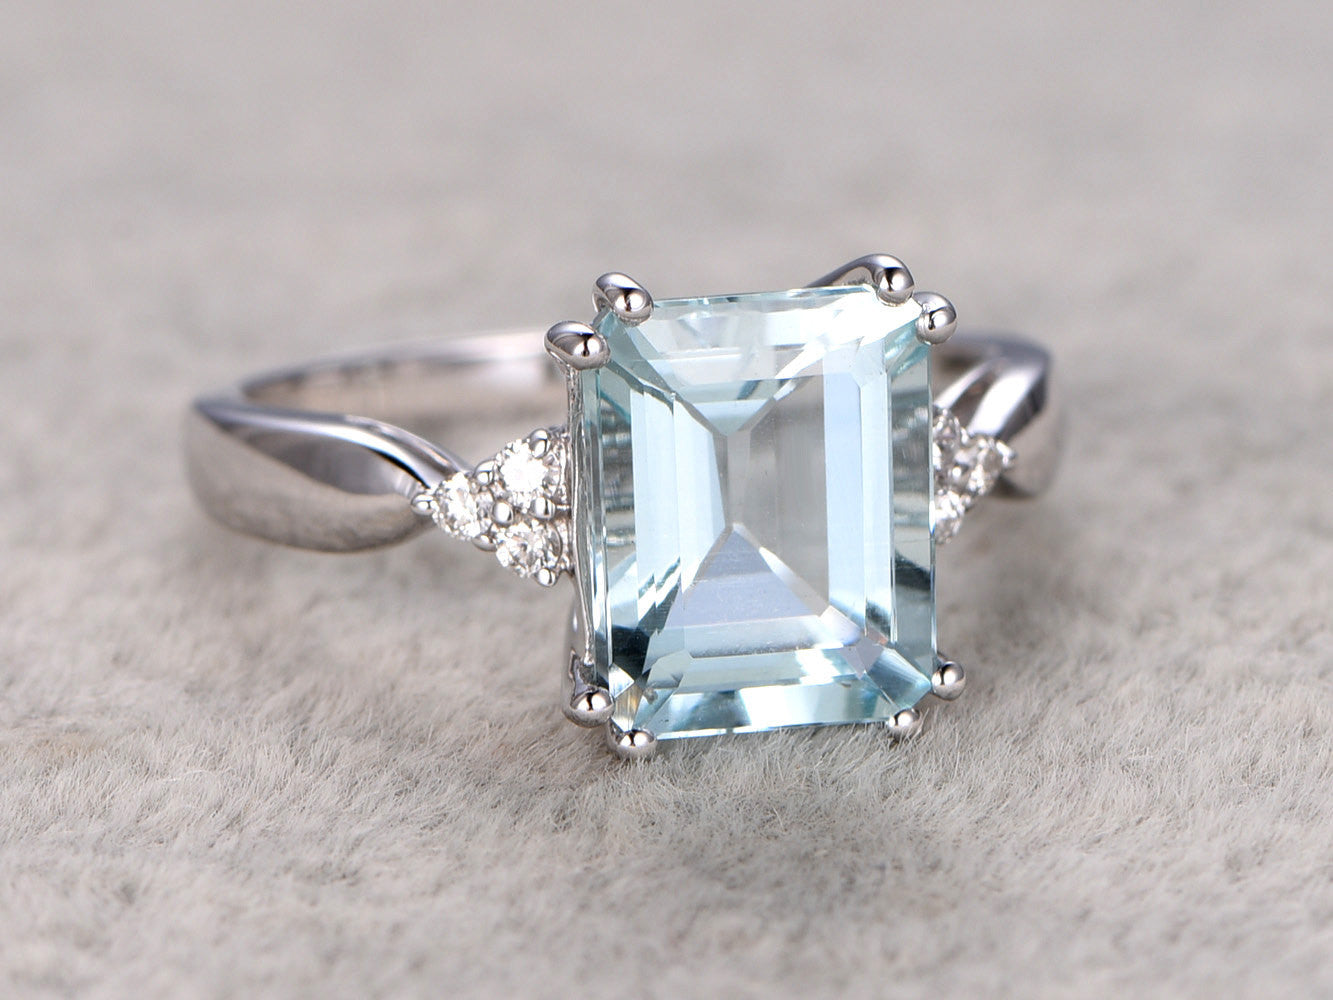 8X10mm Emerald Cut Aquamarine Engagement ring,VS Diamond wedding band,14K Gold,Gemstone Promise Bridal Ring,IF Blue,Propose ring,Prong set